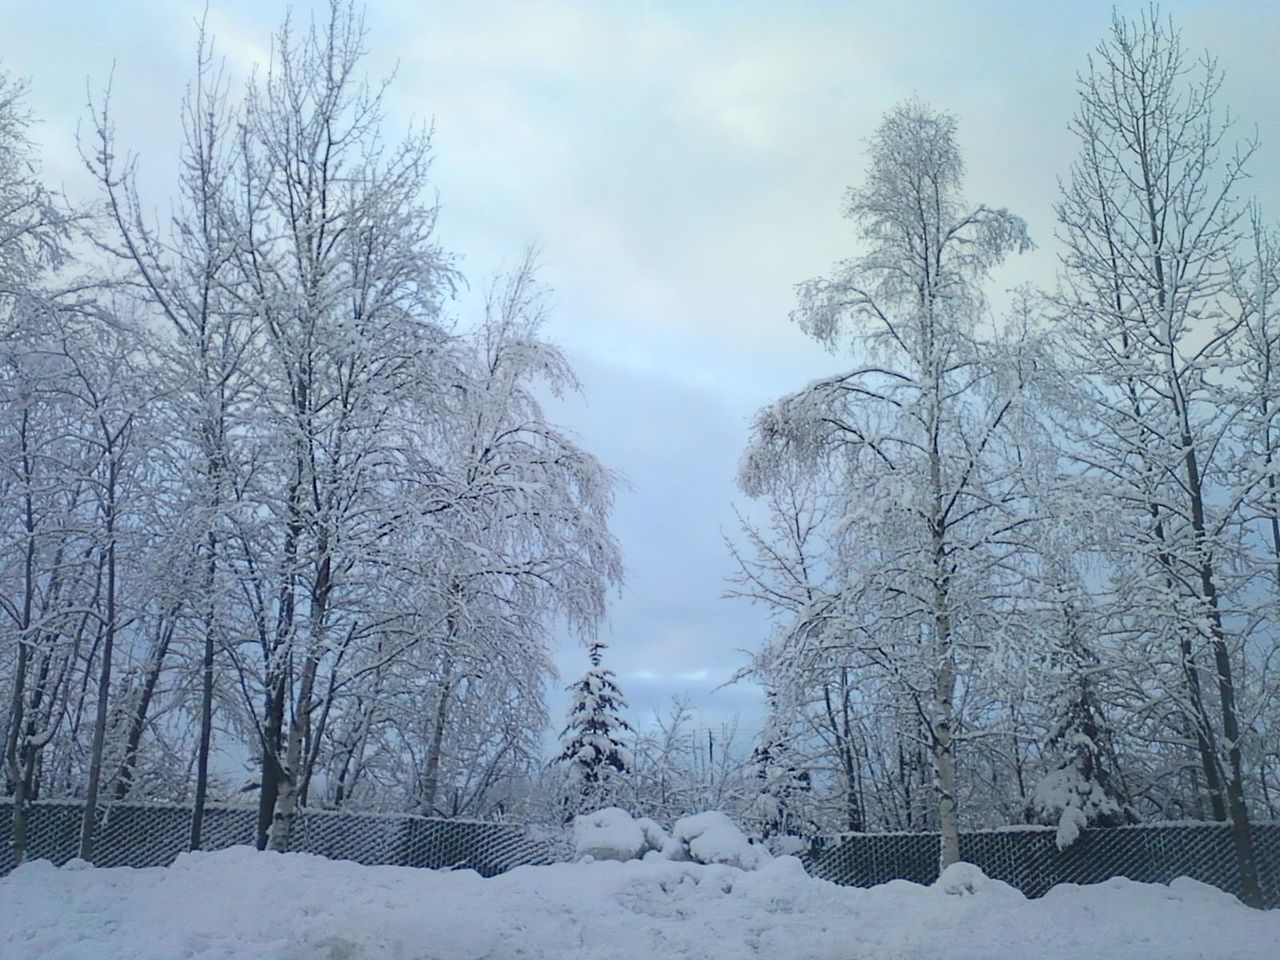 winter, snow, cold temperature, bare tree, weather, nature, beauty in nature, tree, tranquility, tranquil scene, outdoors, scenics, no people, frozen, day, landscape, branch, sky